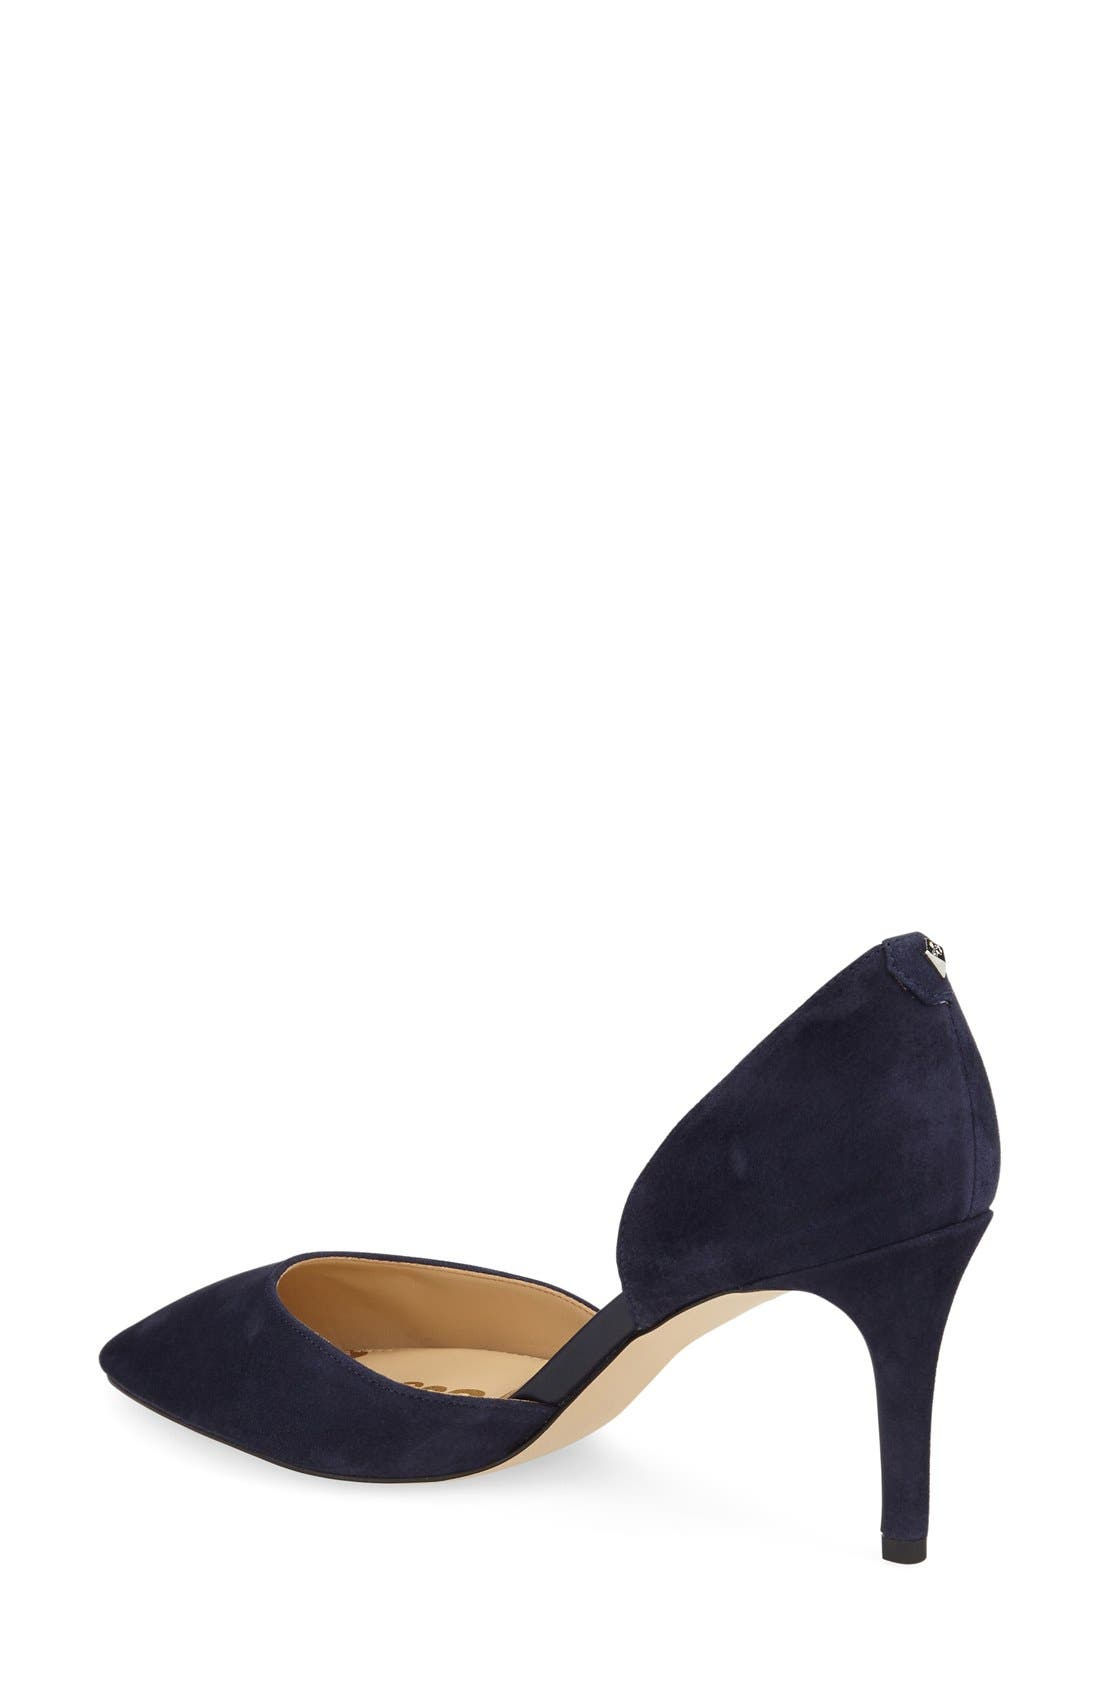 'Telsa' d'Orsay Pointy Toe Pump,                             Alternate thumbnail 29, color,